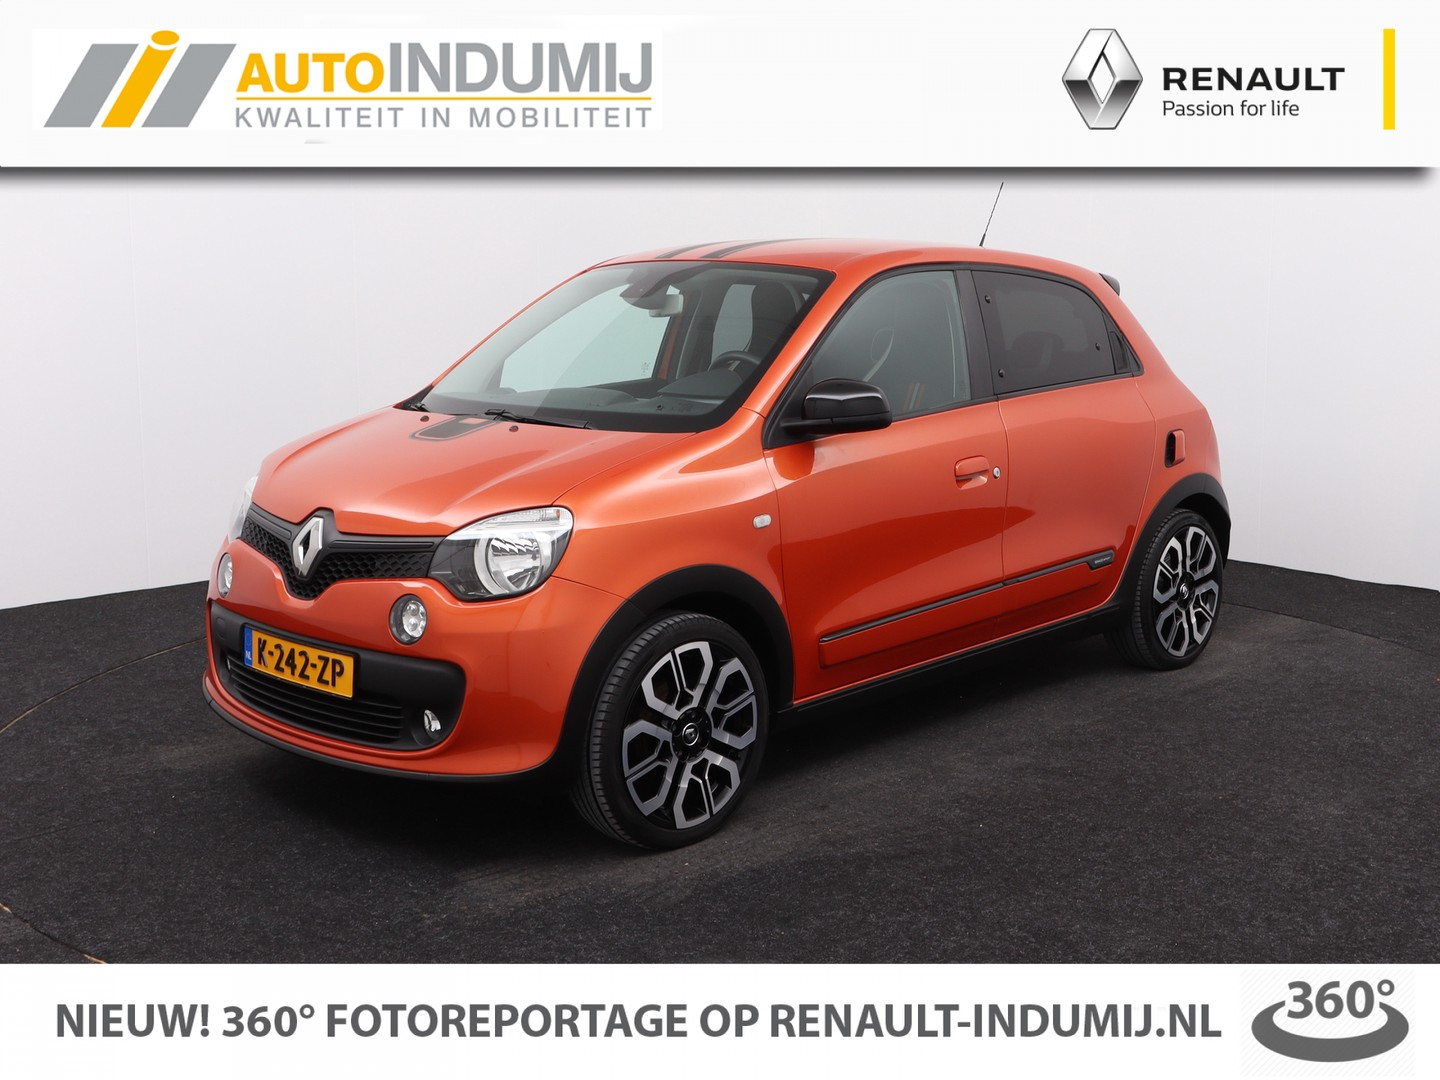 Renault Twingo Tce gt 110 / hot hatch! // camera / climate control / navi